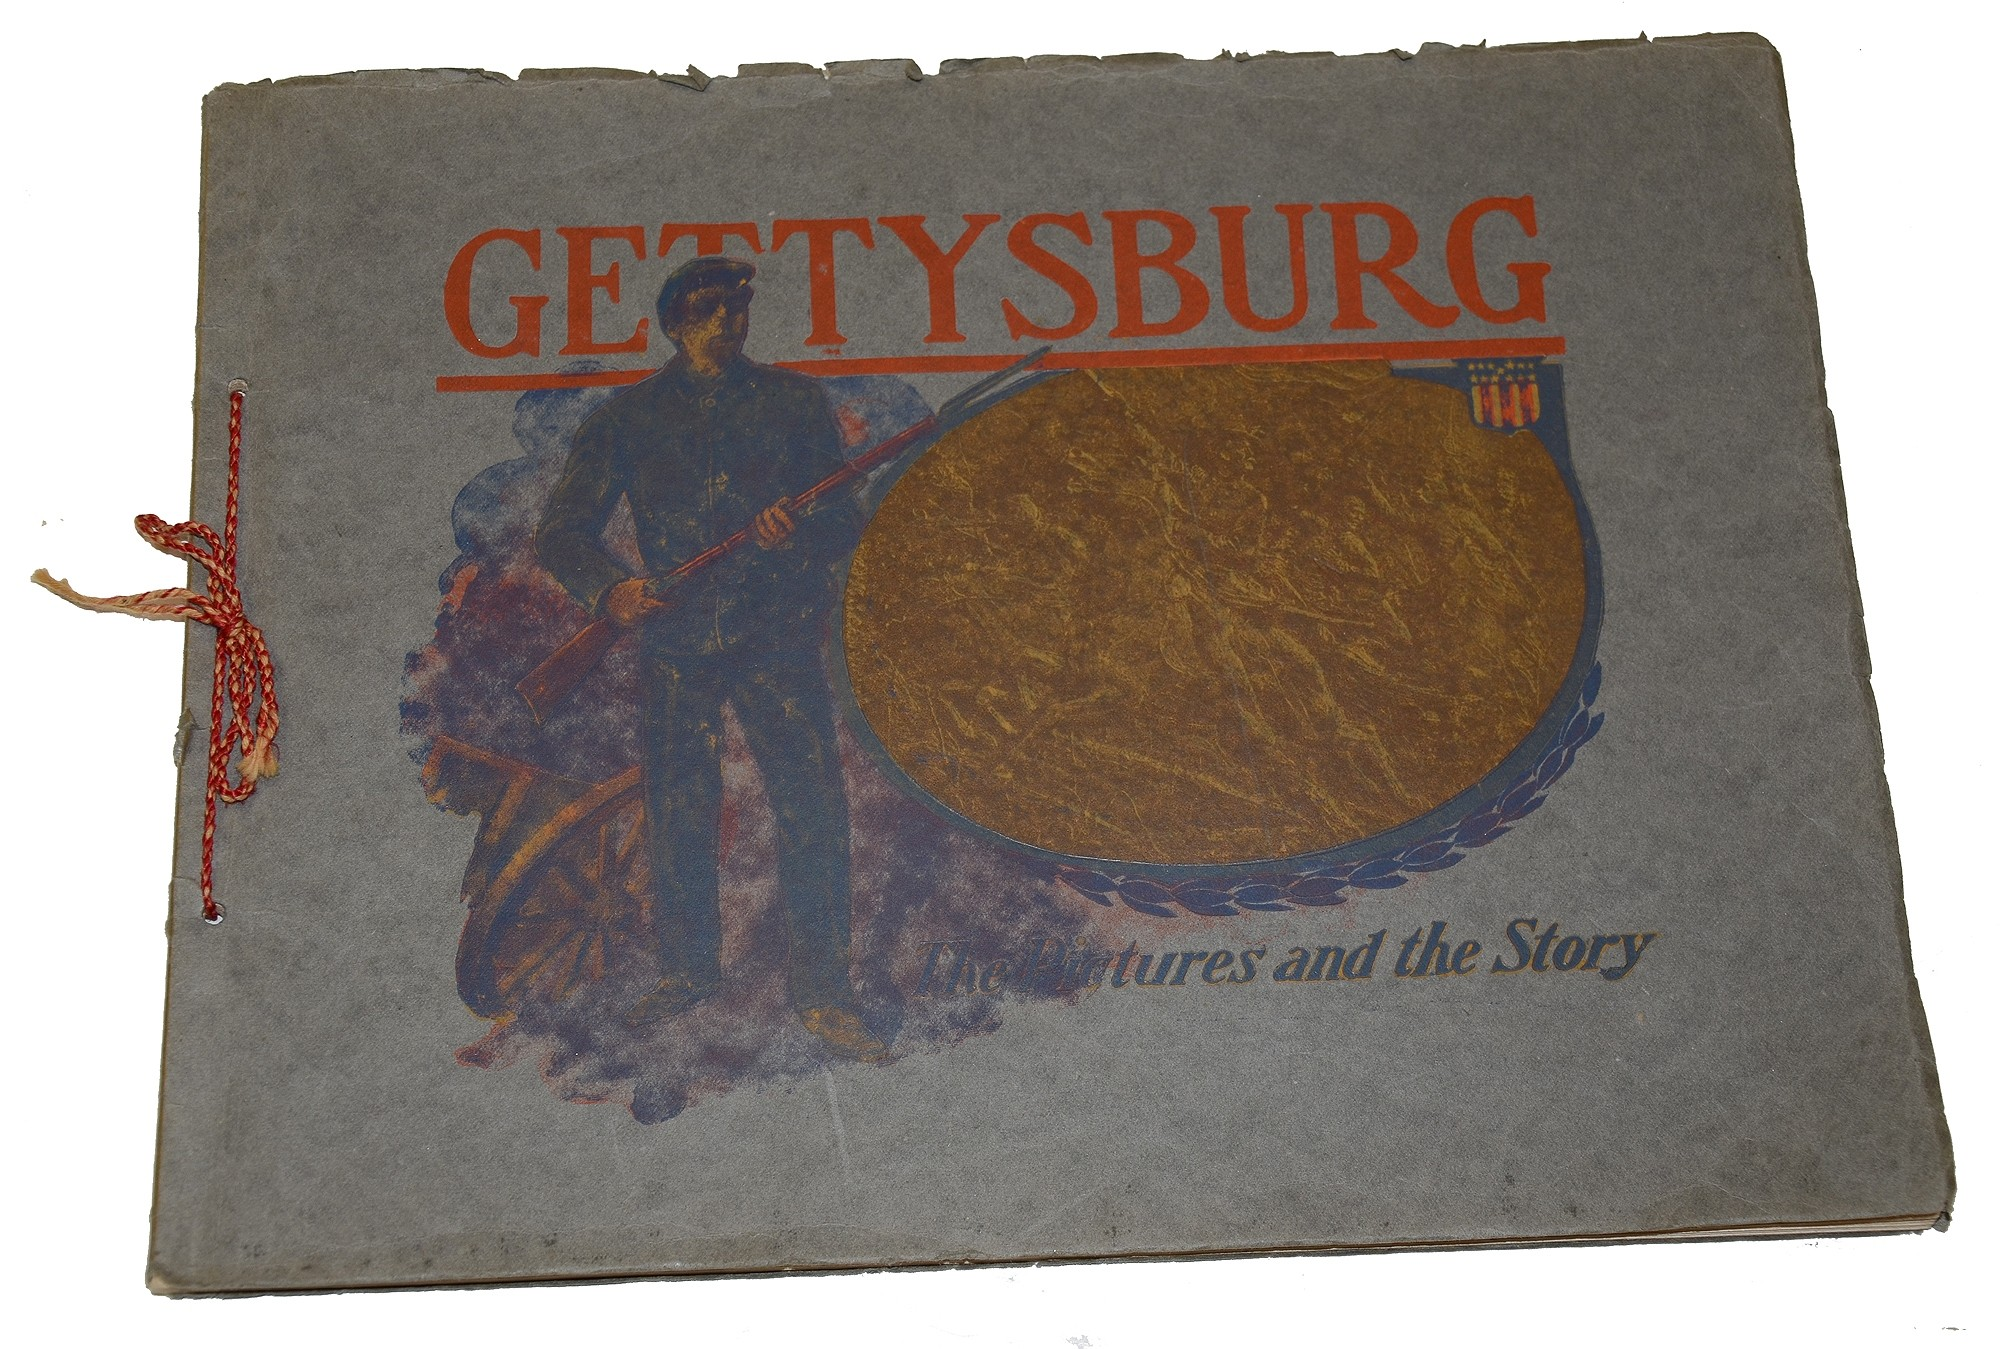 """GETTYSBURG – THE PICTURES AND THE STORY"" SOUVENIR BOOK"